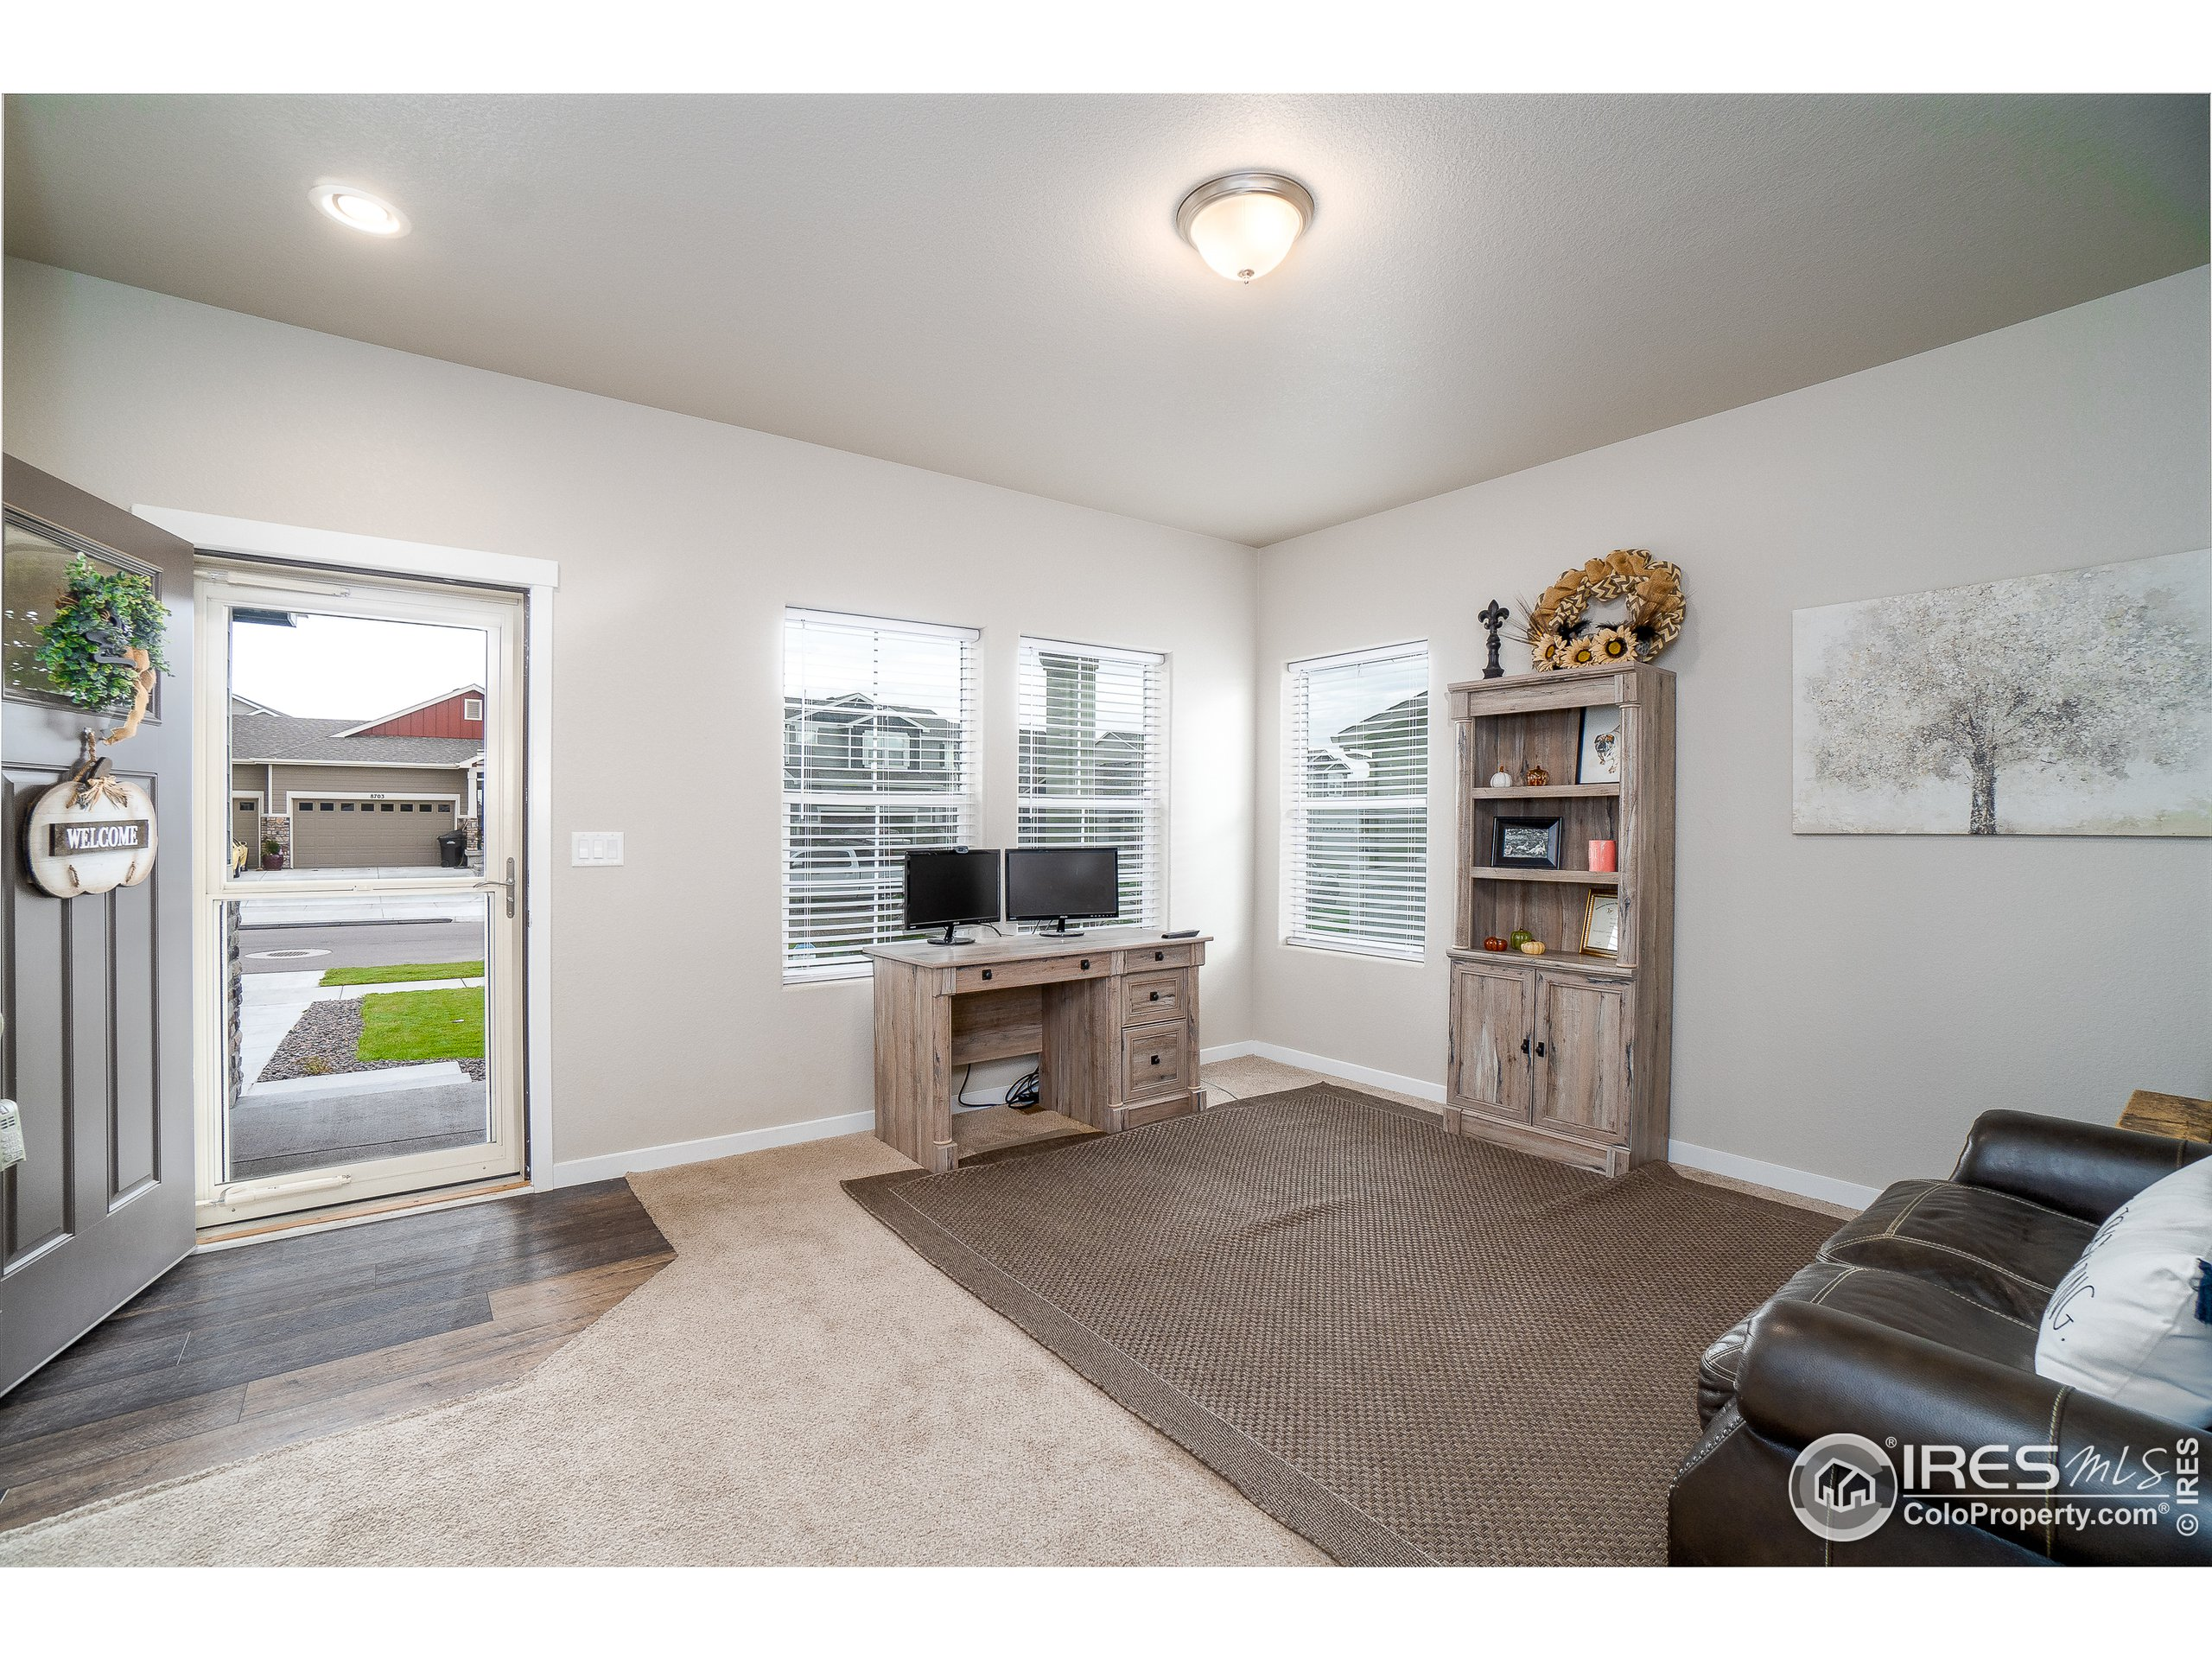 Formal living area by front entry door